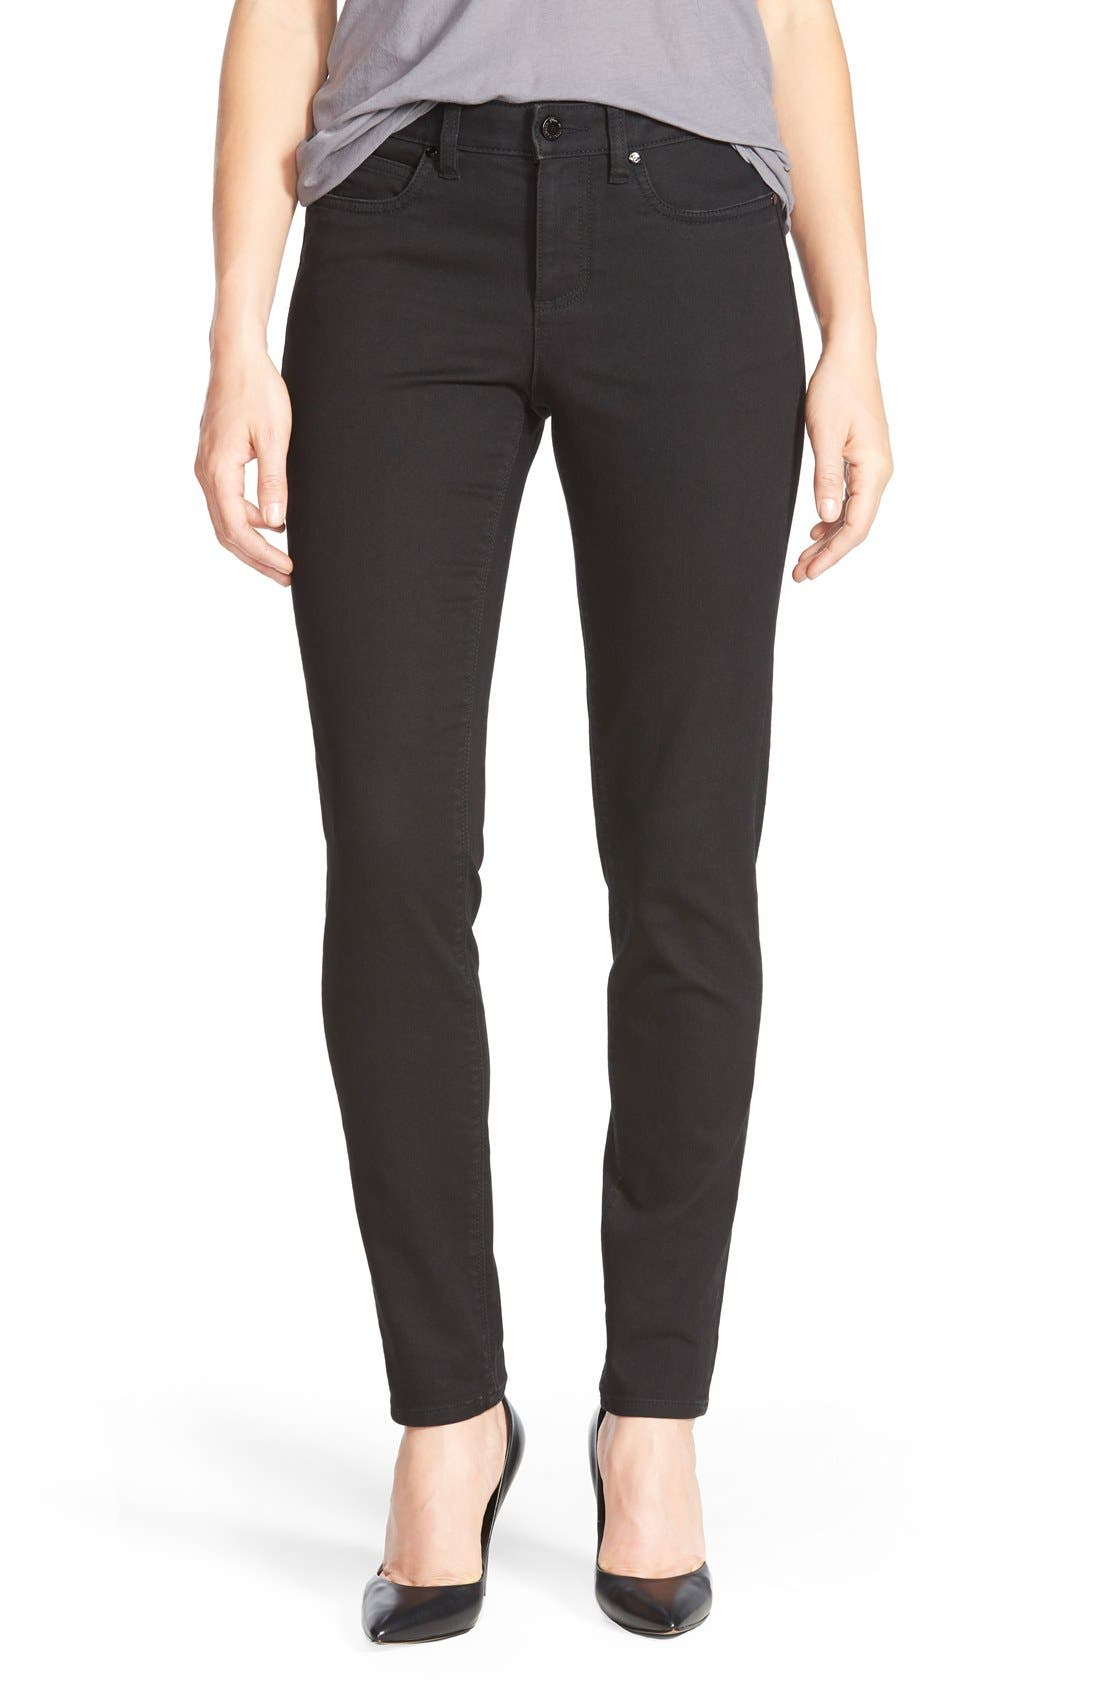 Main Image - Two by Vince Camuto Stretch Skinny Jeans